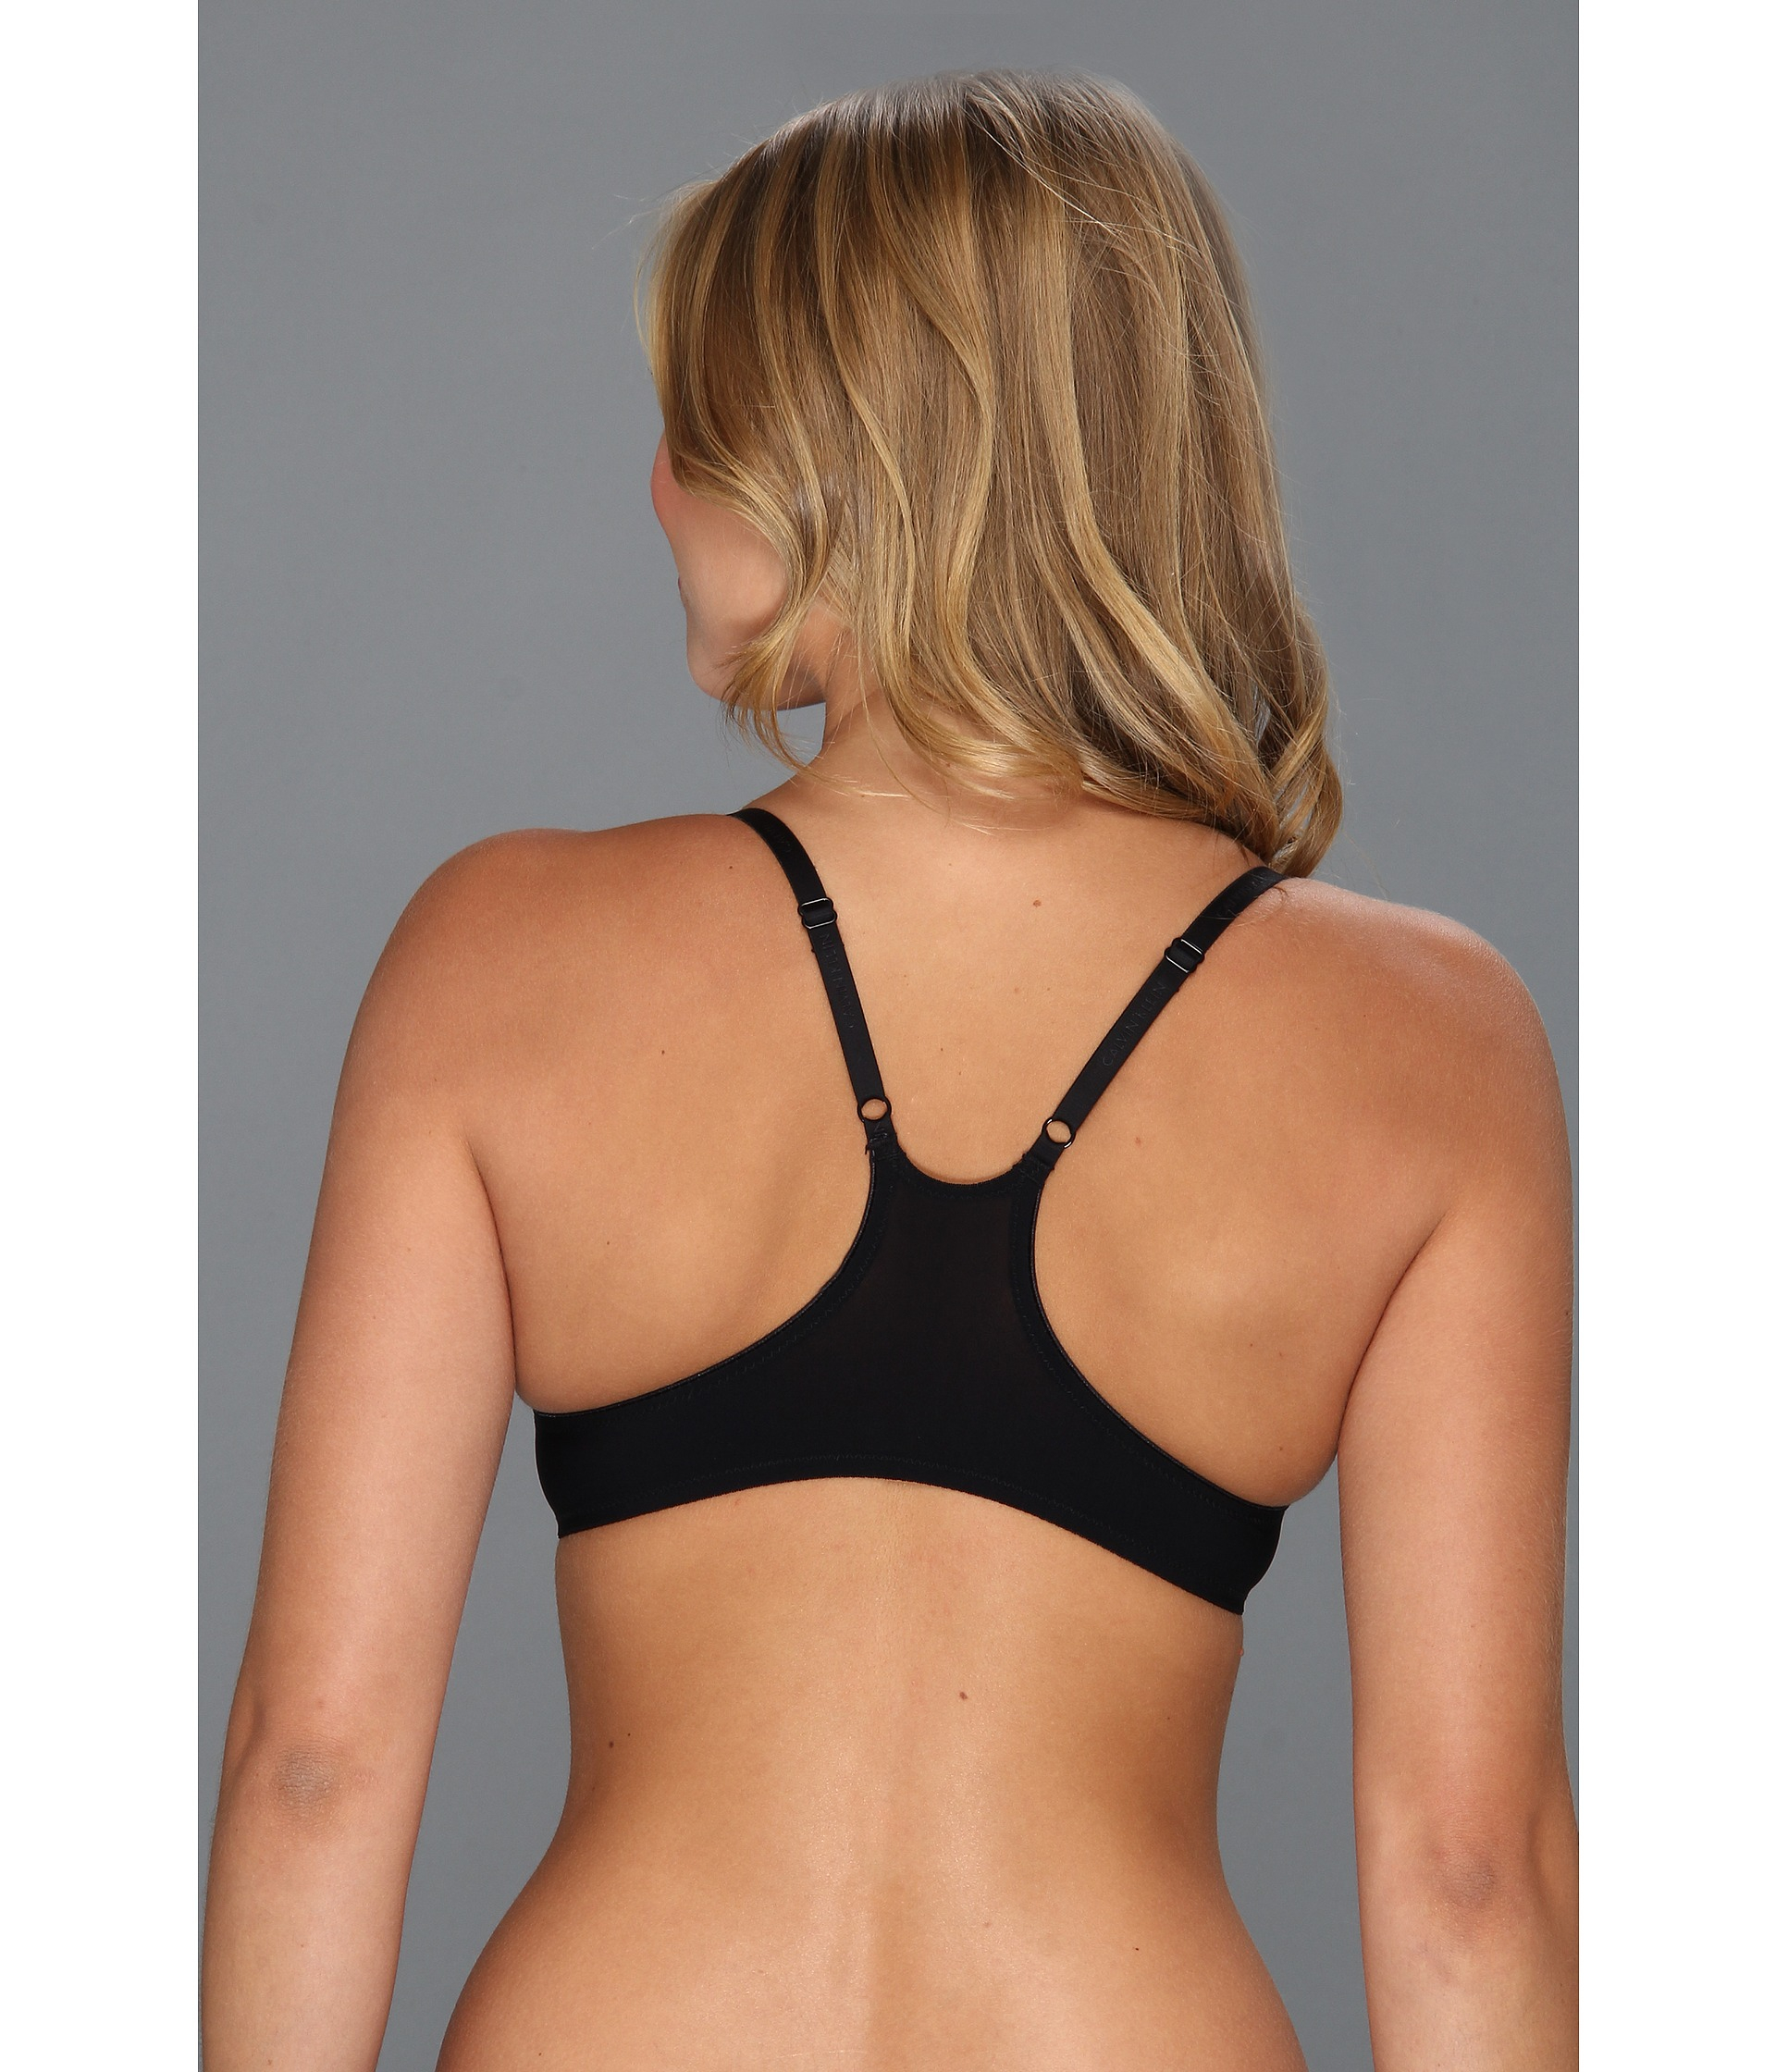 the racerback sports bra – medium support with sporty style This sports bra is a basic must-have for any active wardrobe. Intended to provide medium, everyday support it's perfect for gym workouts, yoga sessions and active weekends.